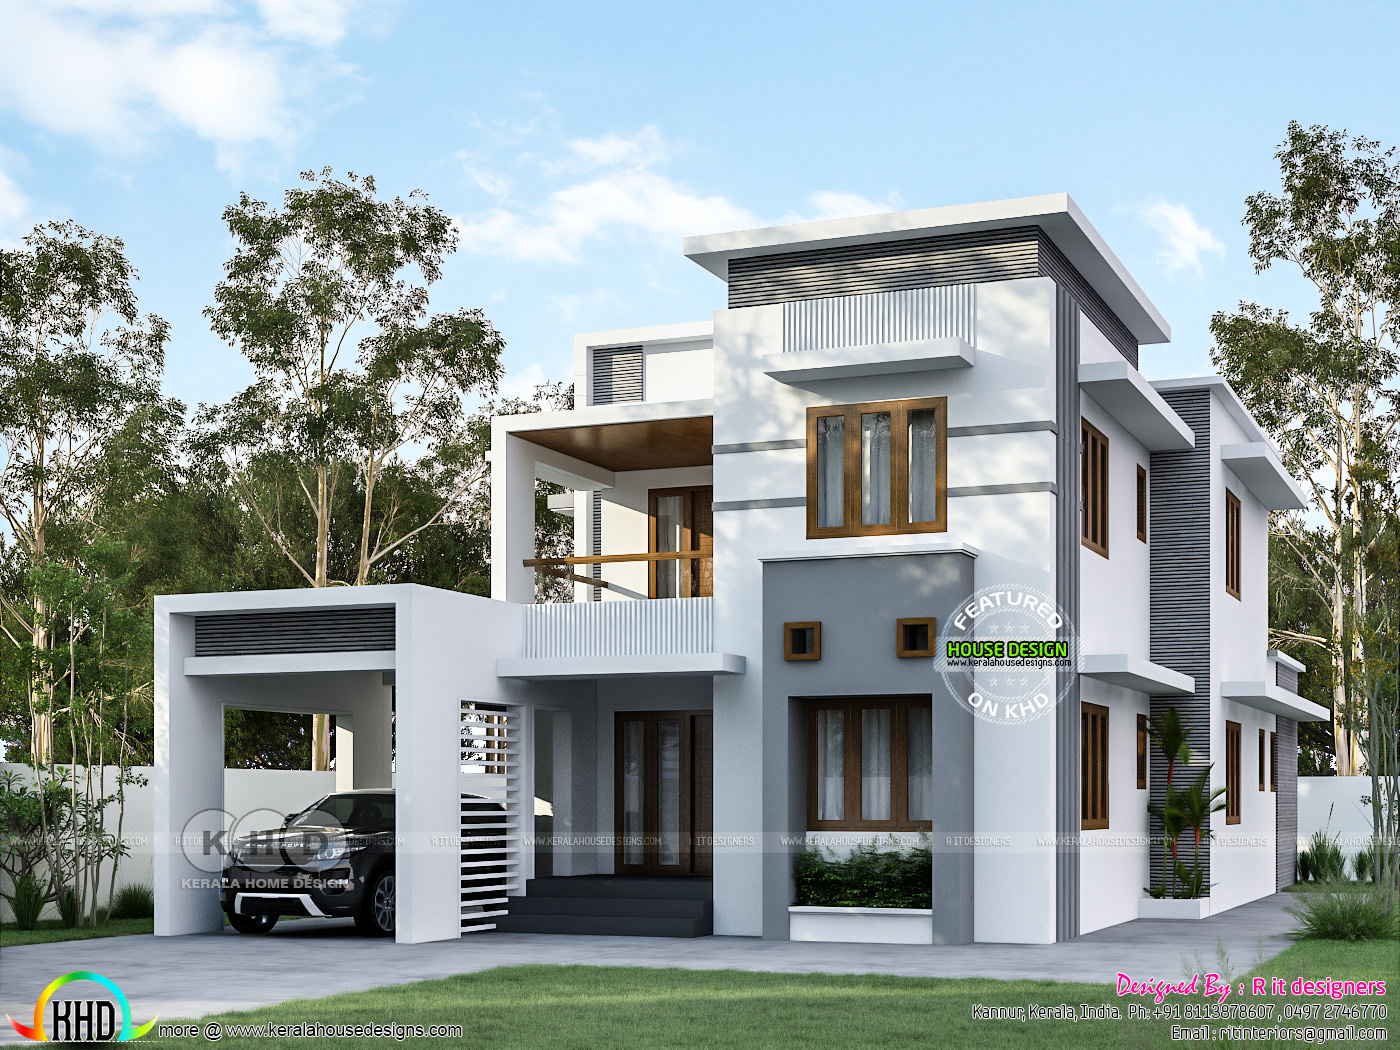 2457 Sq Ft Flat Roof Style House Plan Kerala Home Design And Floor Plans 8000 Houses